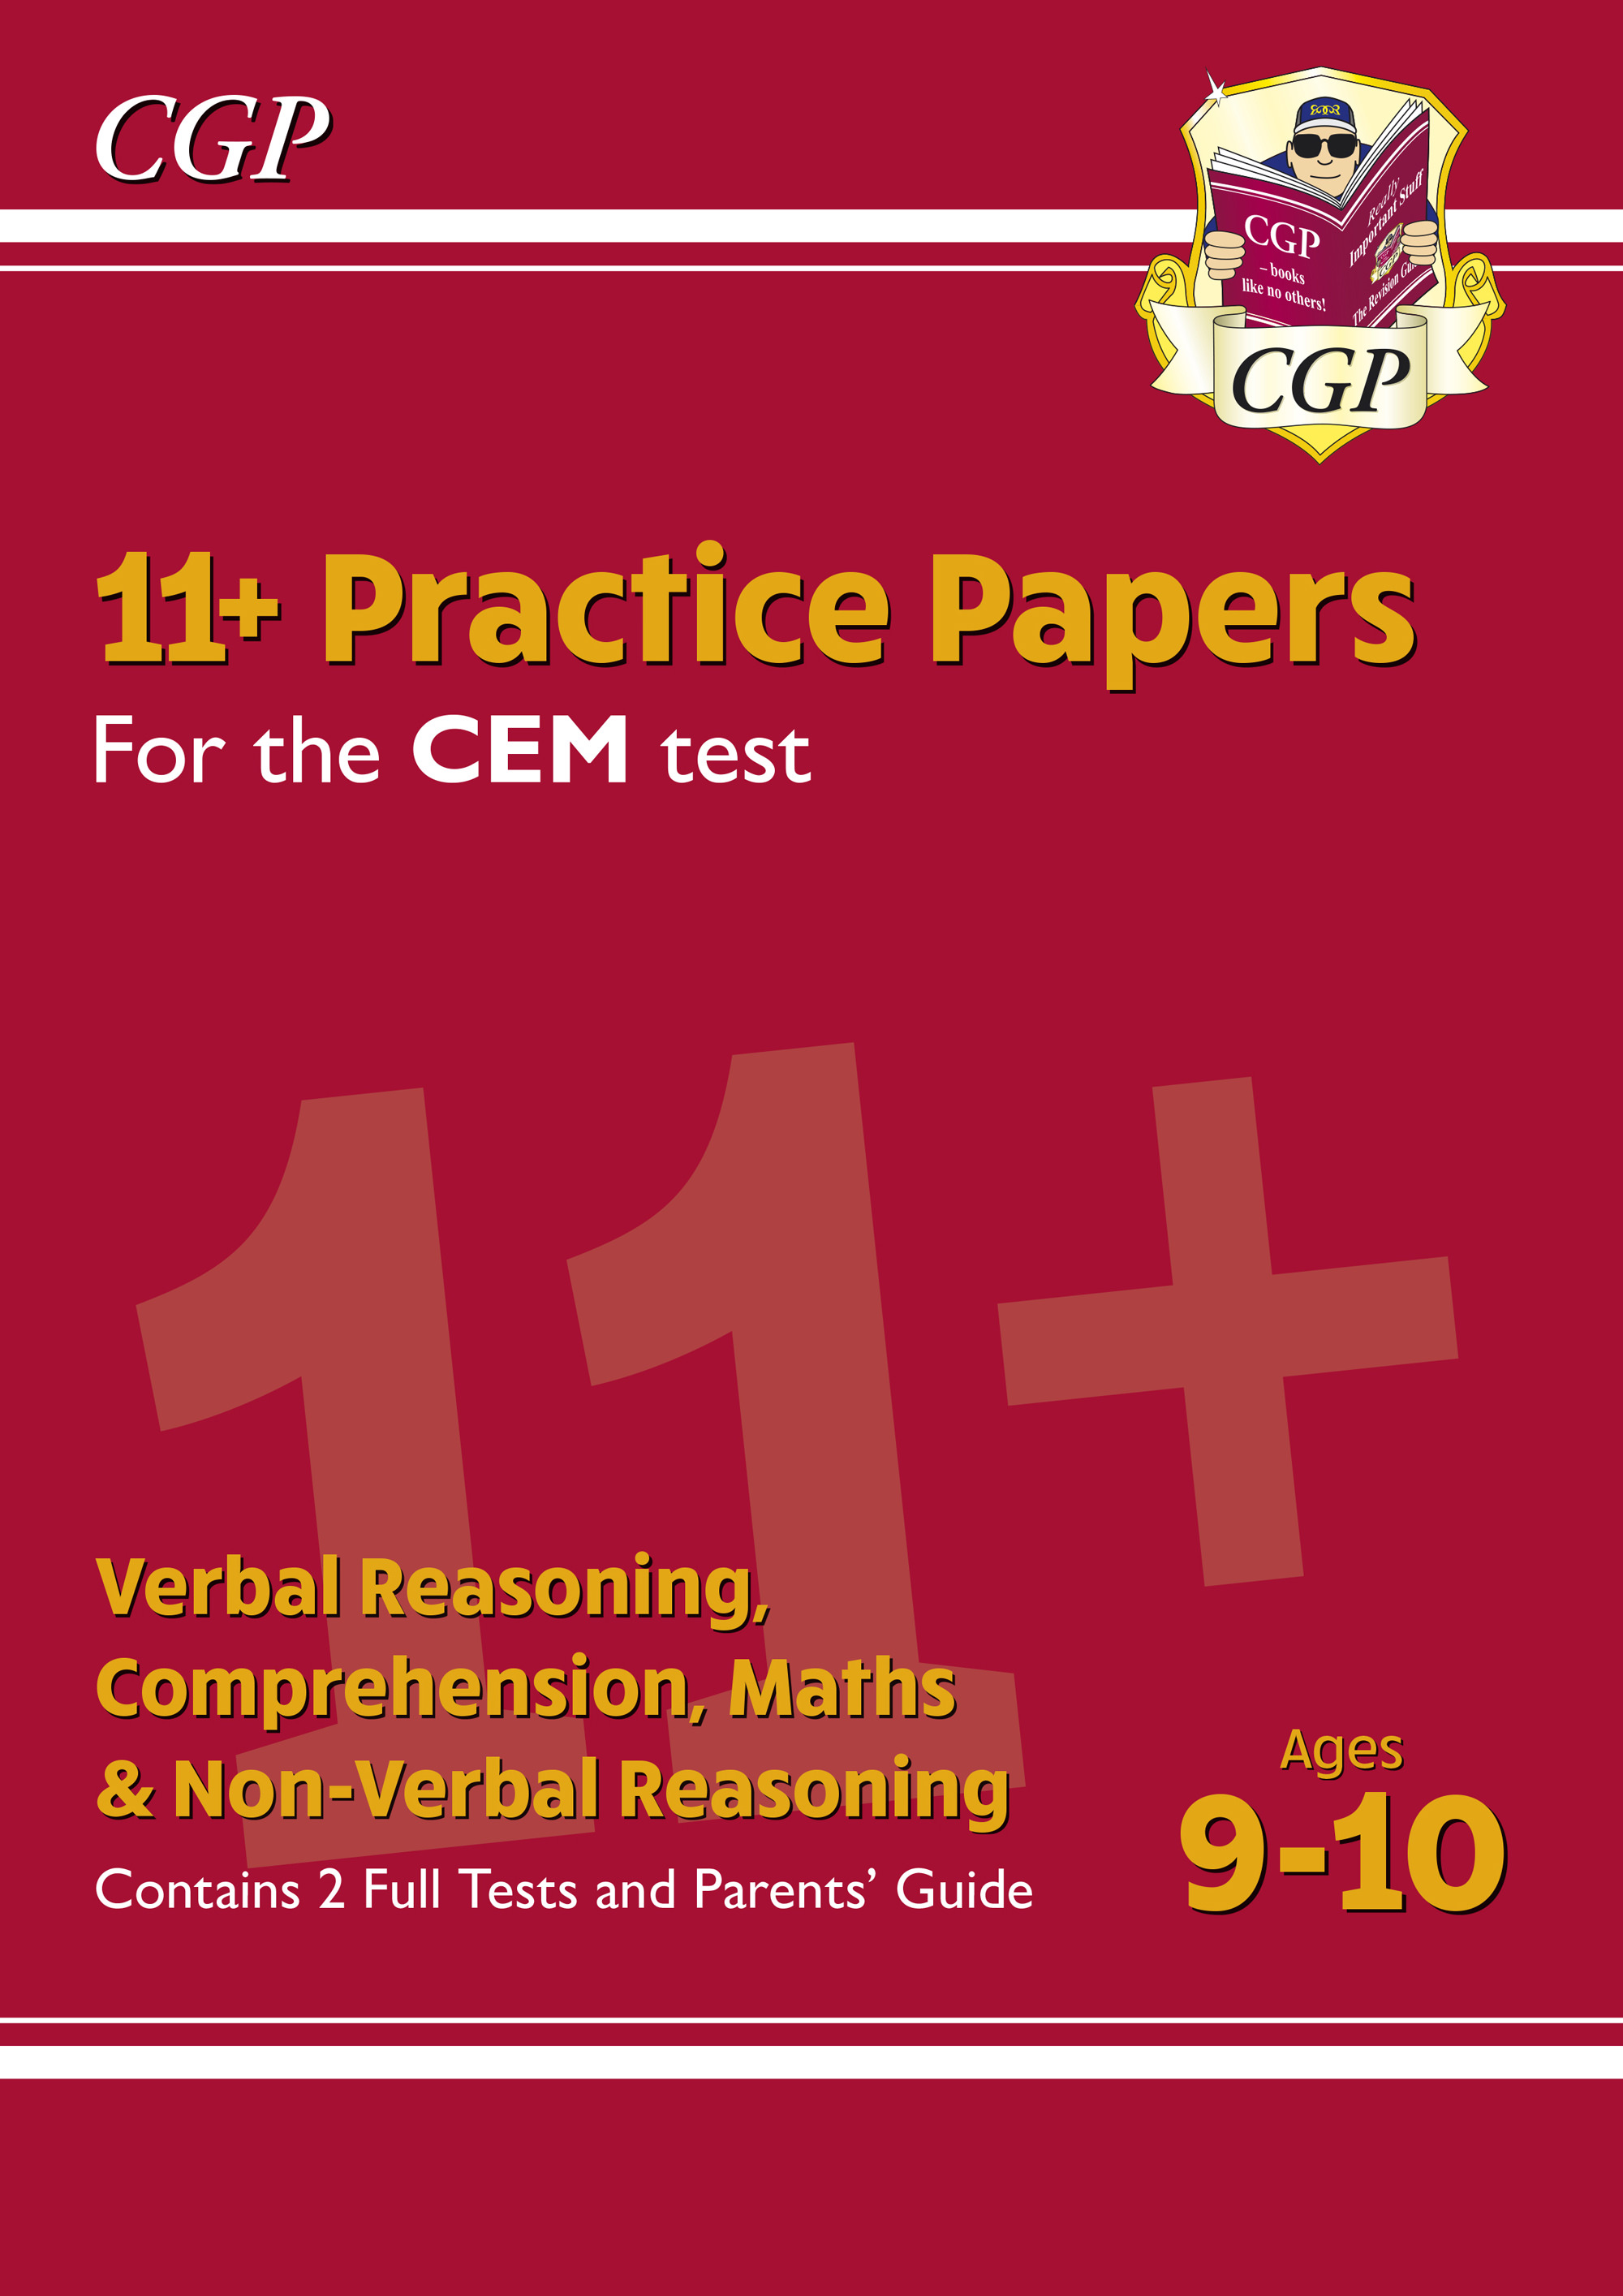 ELY5PDE1DK - New 11+ CEM Practice Papers - Ages 9-10 (with Parents' Guide)